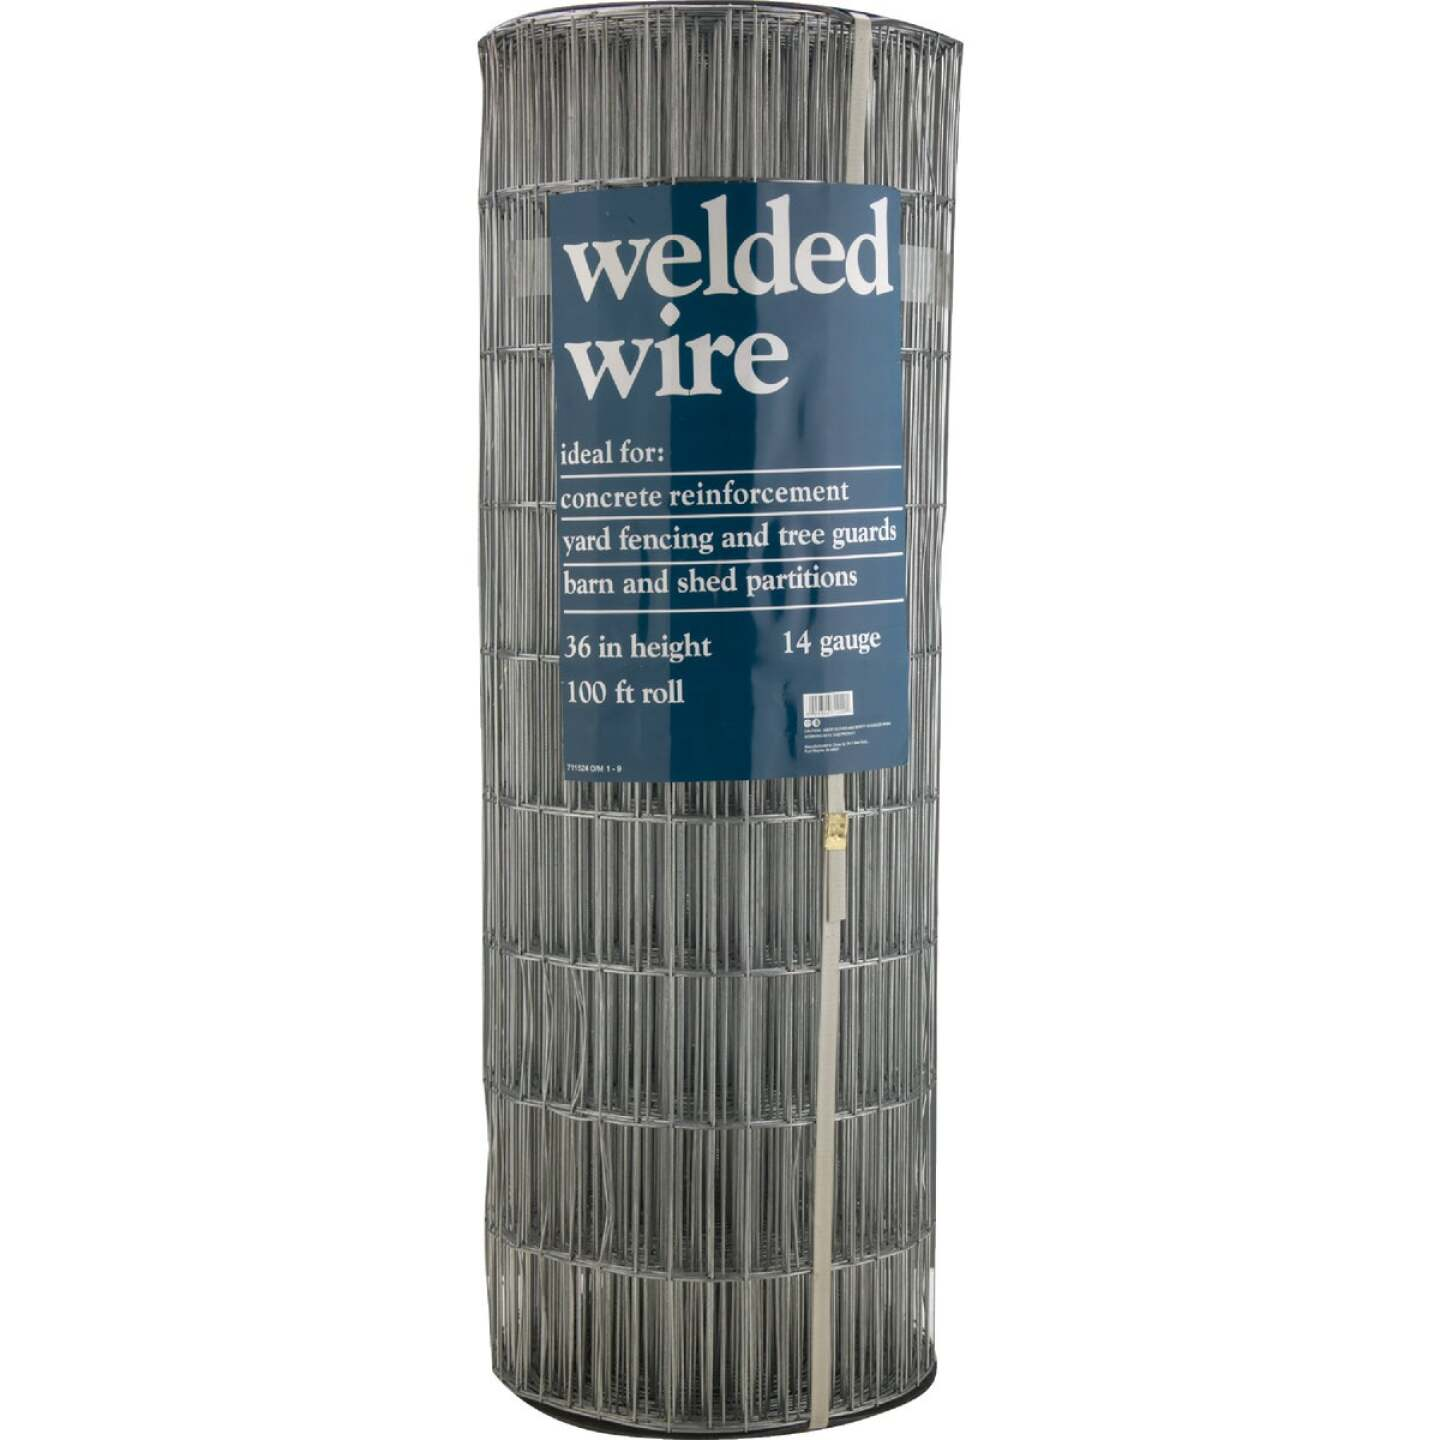 60 In. H. x 100 Ft. L. (2x4) Galvanized Welded Wire Fence Image 2